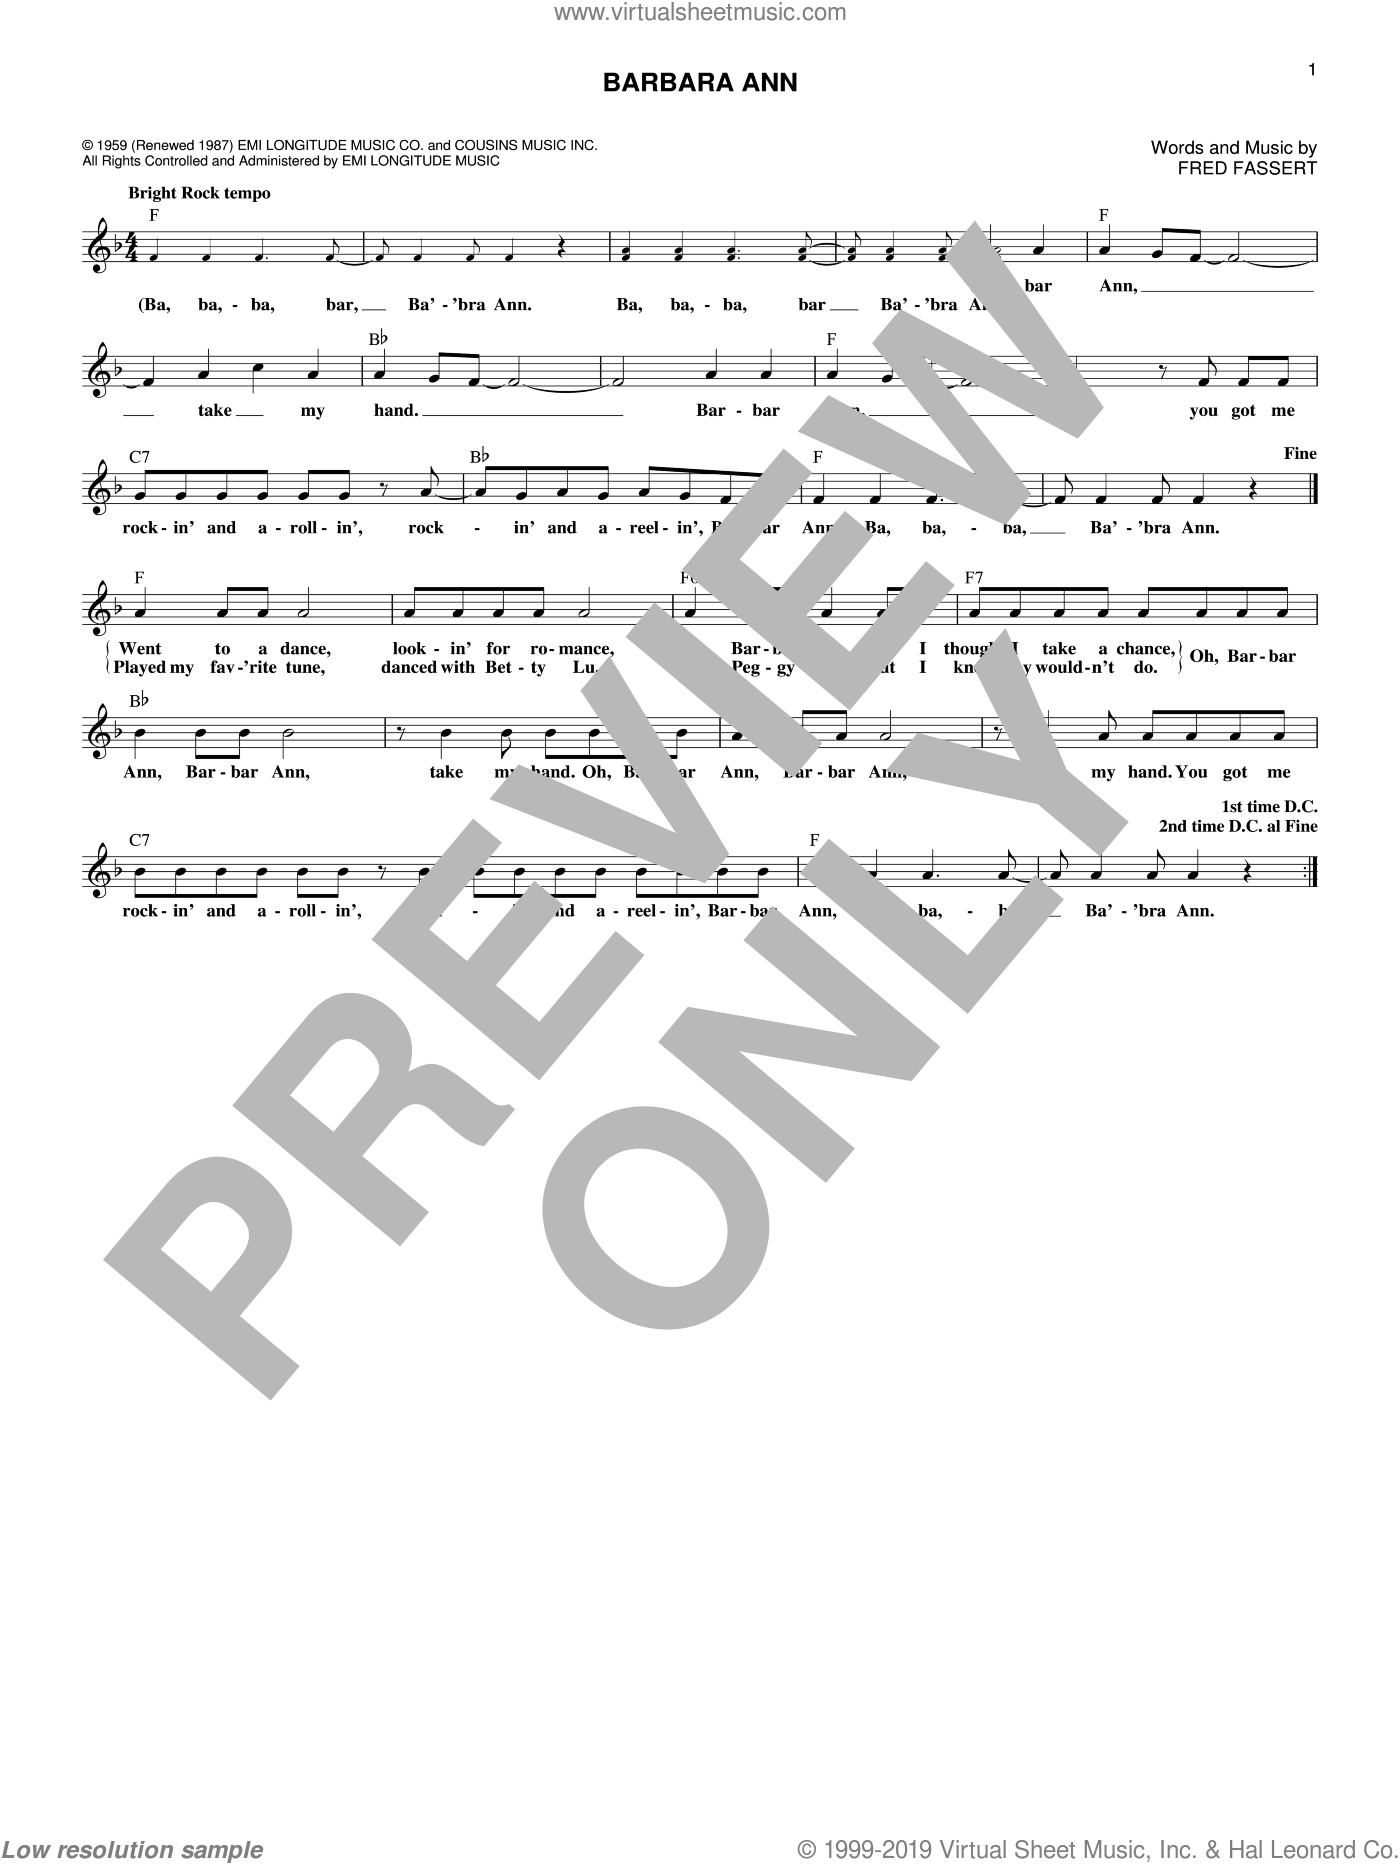 Barbara Ann sheet music for voice and other instruments (fake book) by The Beach Boys, The Regents and Fred Fassert, intermediate skill level